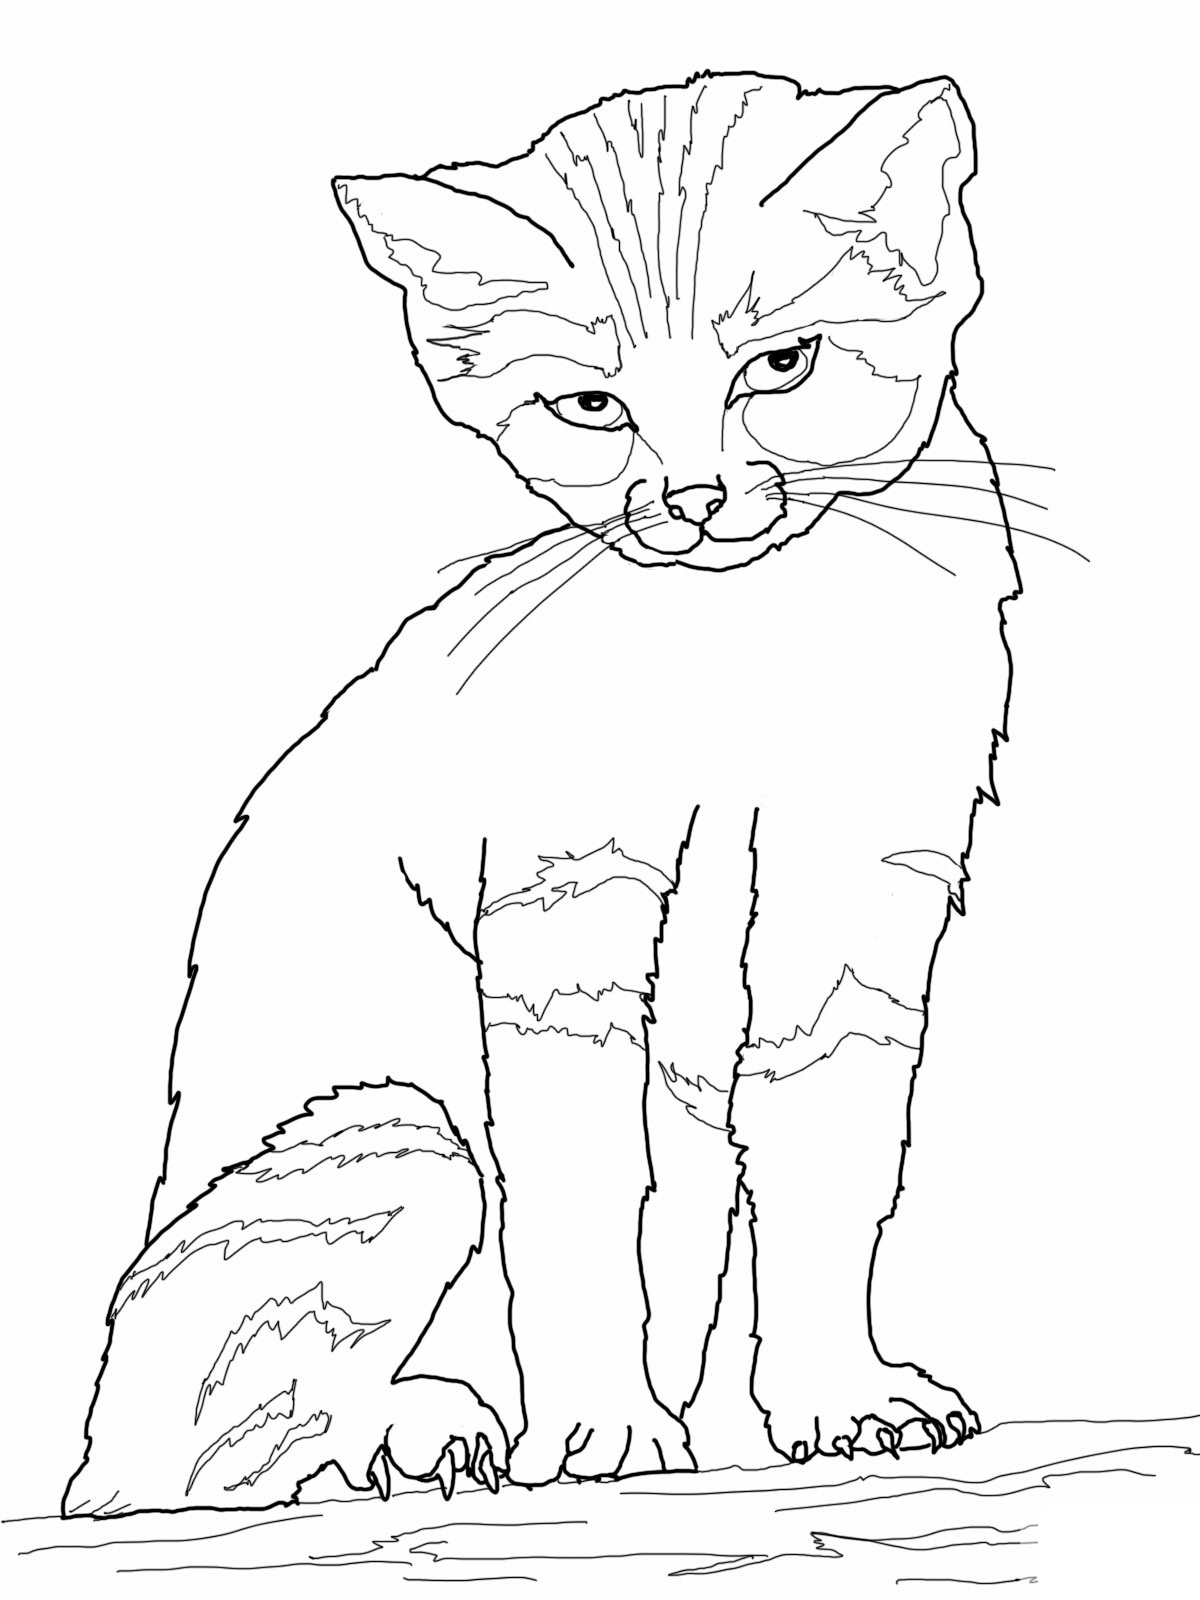 coloring pages of animals cats - photo#33